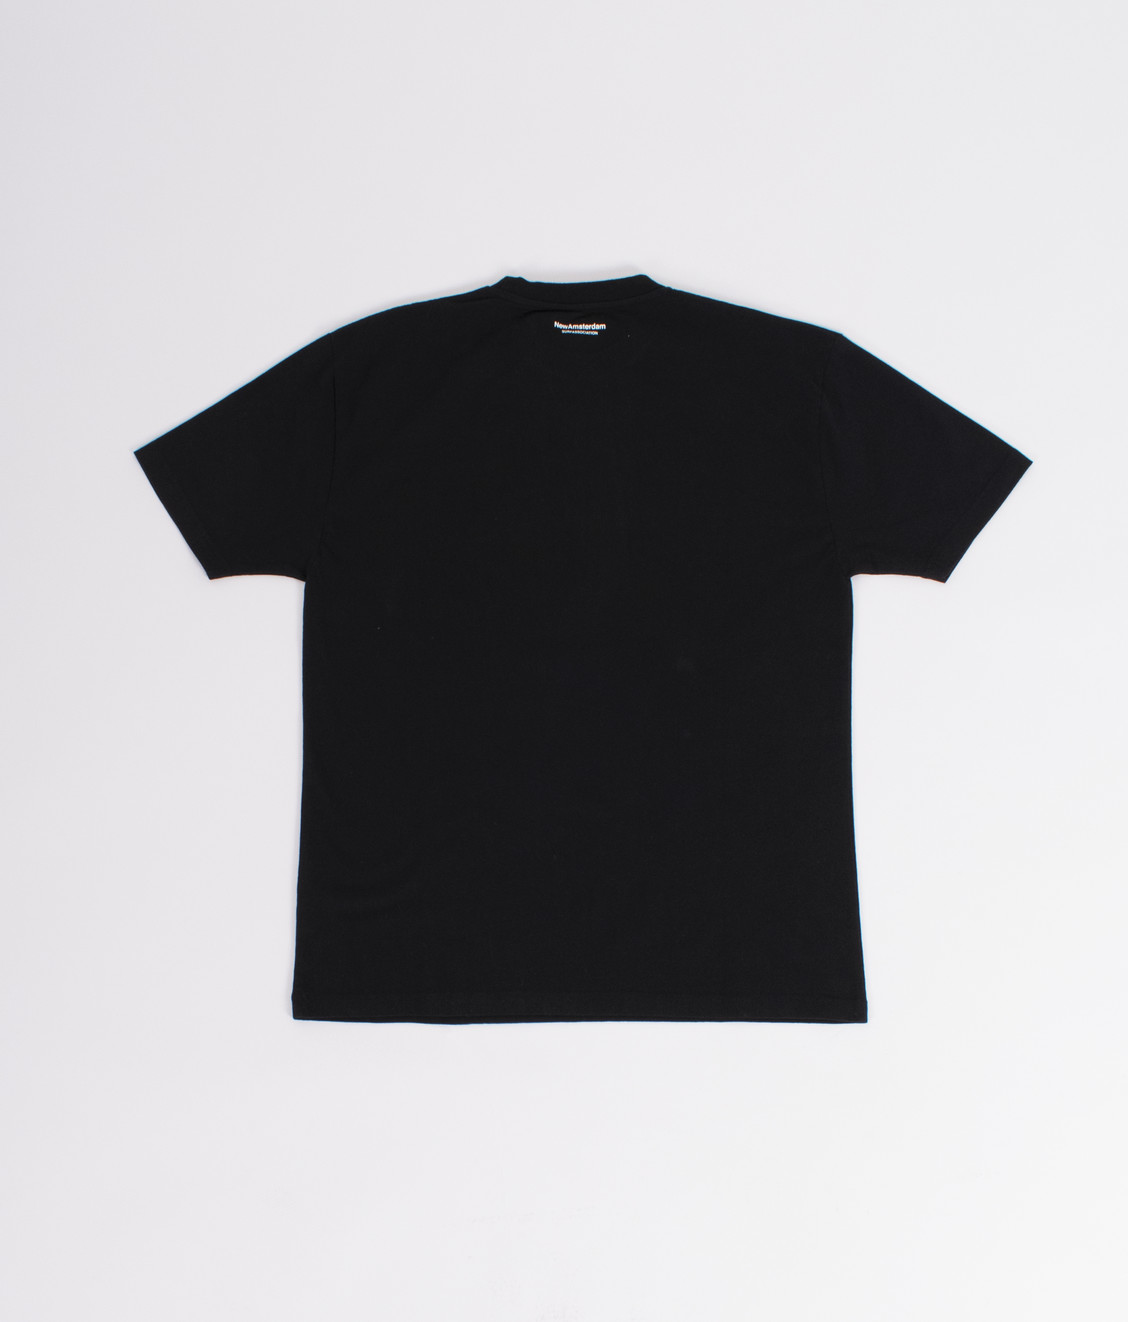 New Amsterdam New Amsterdam Oyster Tee Black